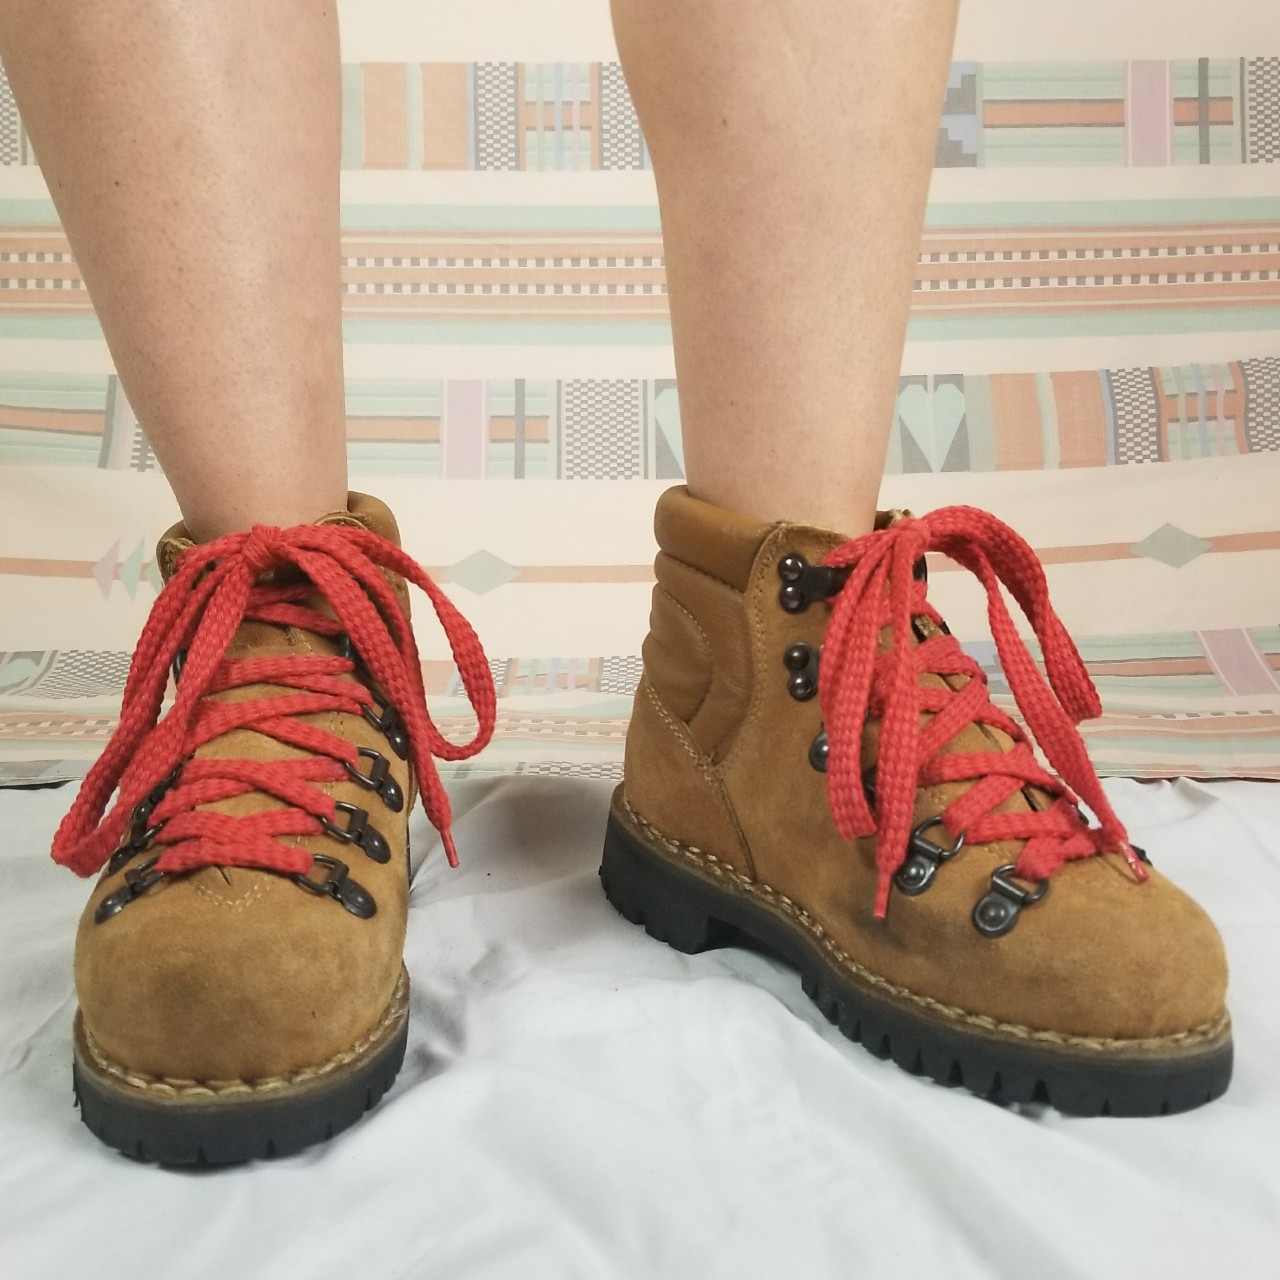 Vintage suede leather hiking boots with